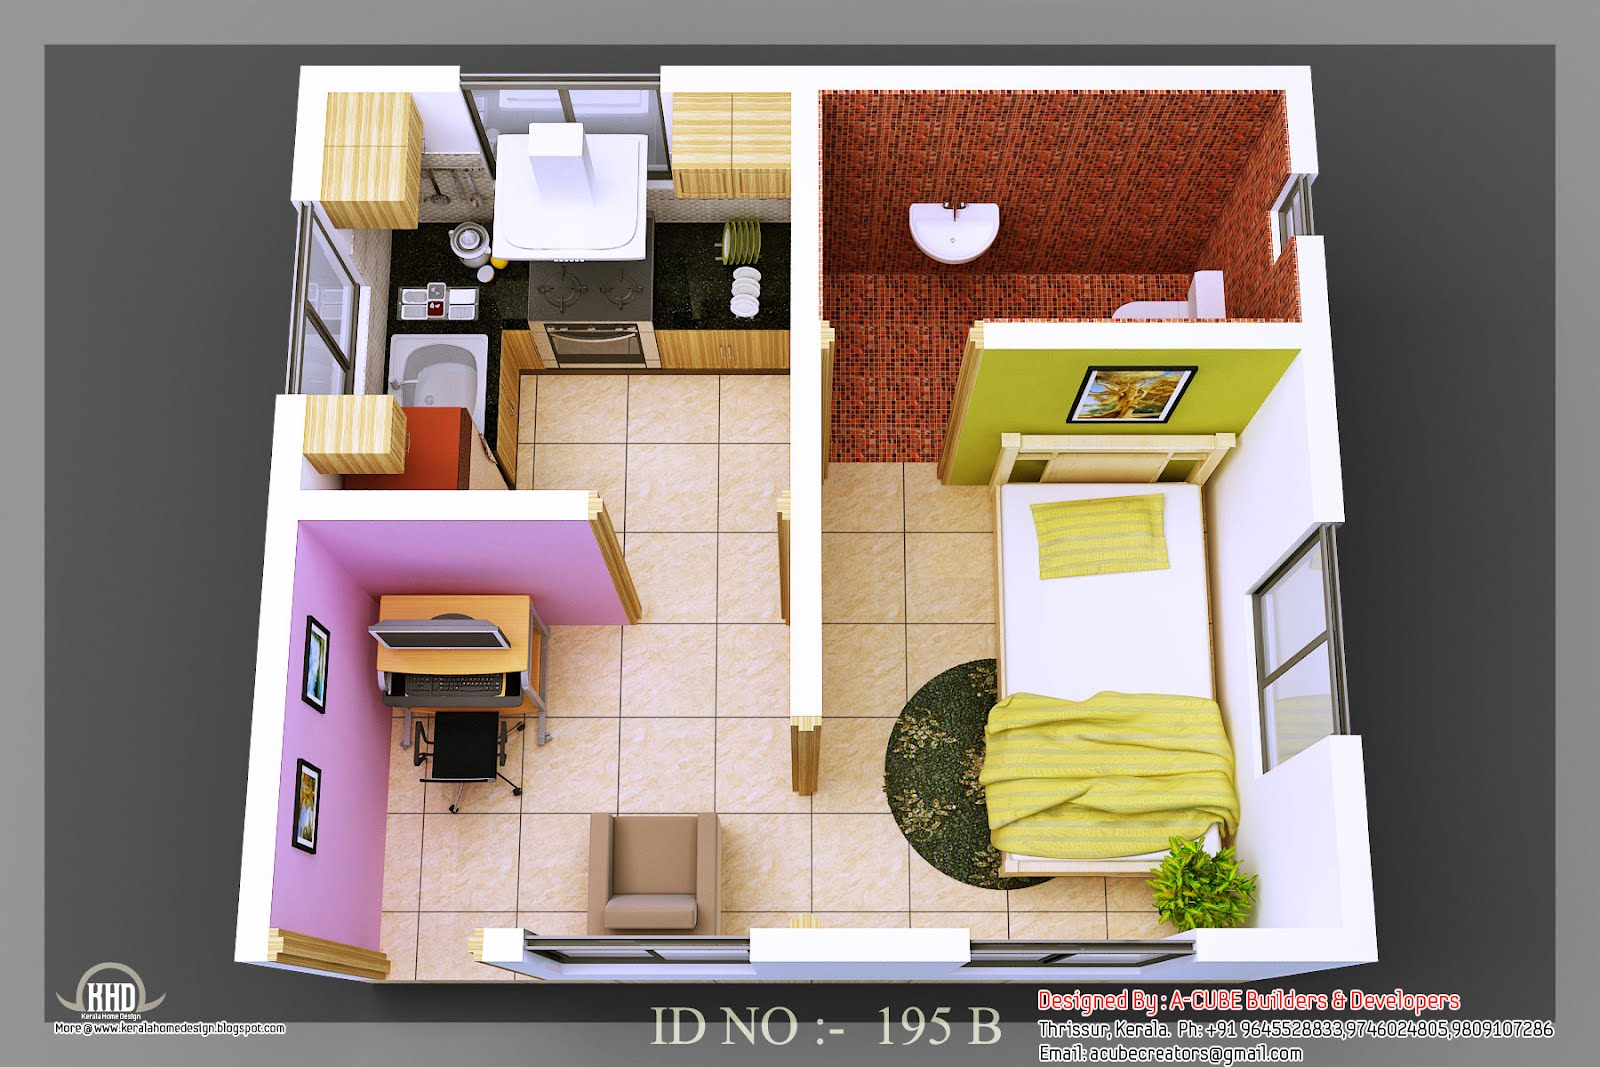 isometric-home-3dview-02.jpg